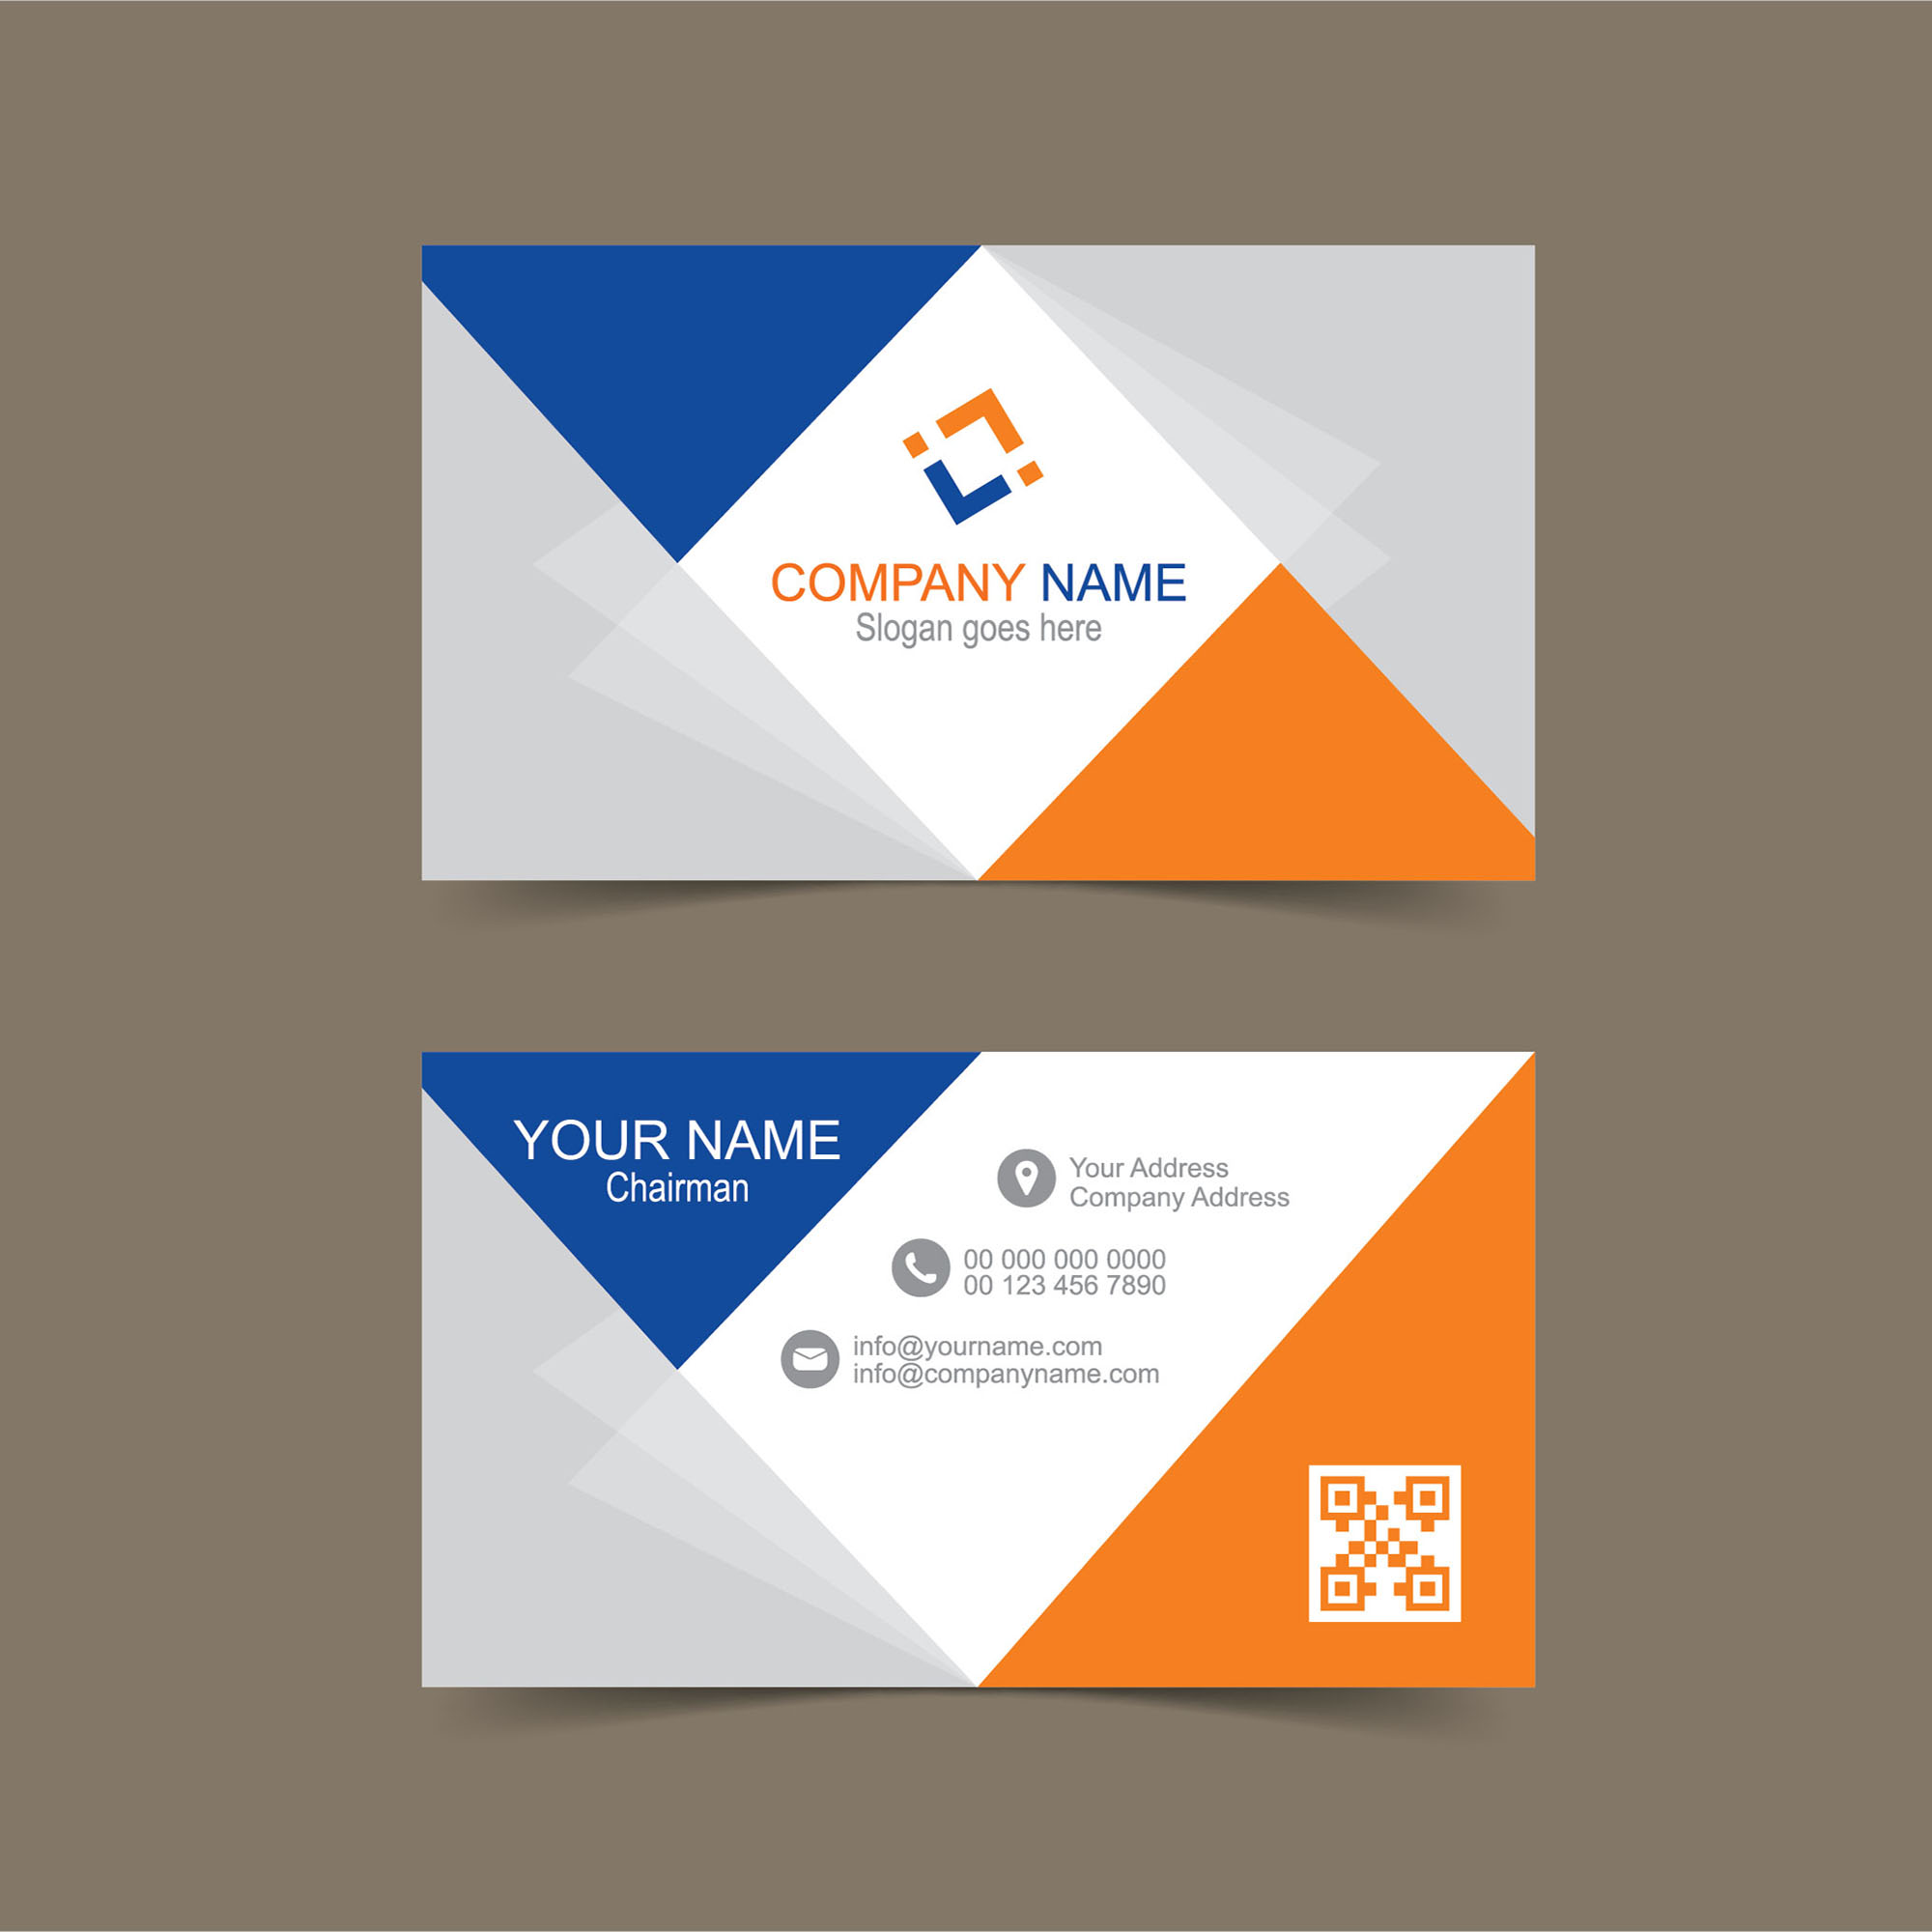 Free business card template for illustrator wisxi business card business cards business card design business card template design templates cheaphphosting Images